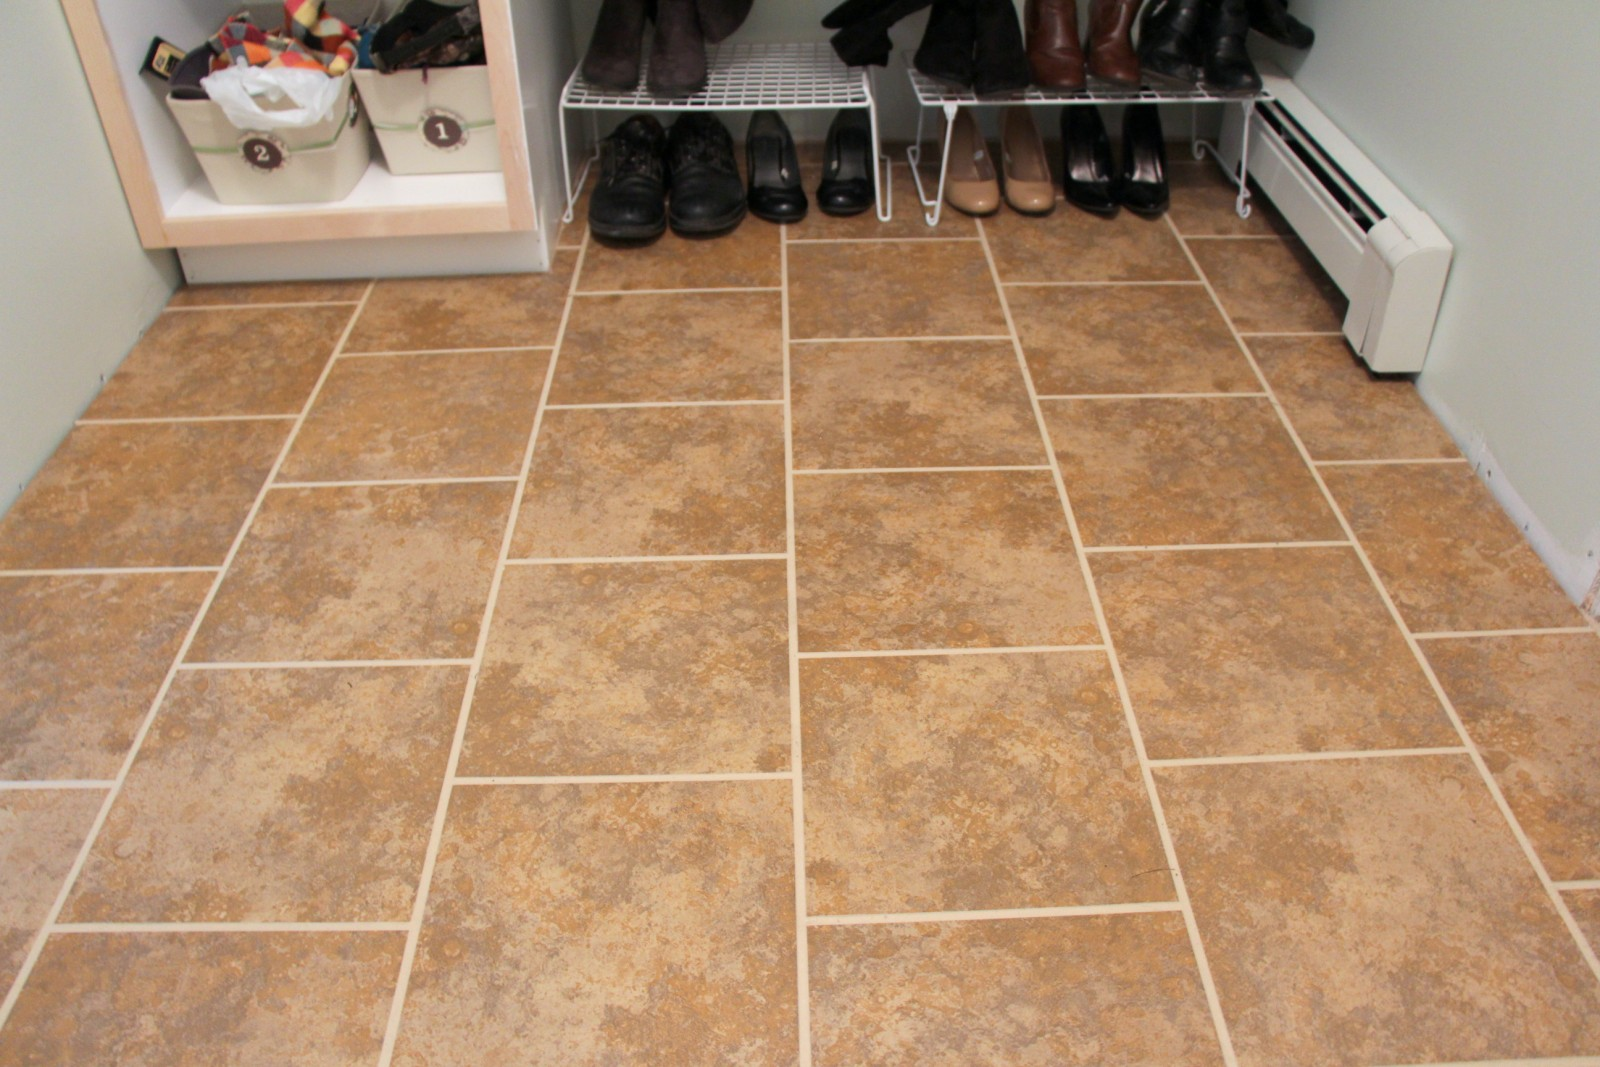 Heart Maine Home: A review of SnapStone floating tile floor